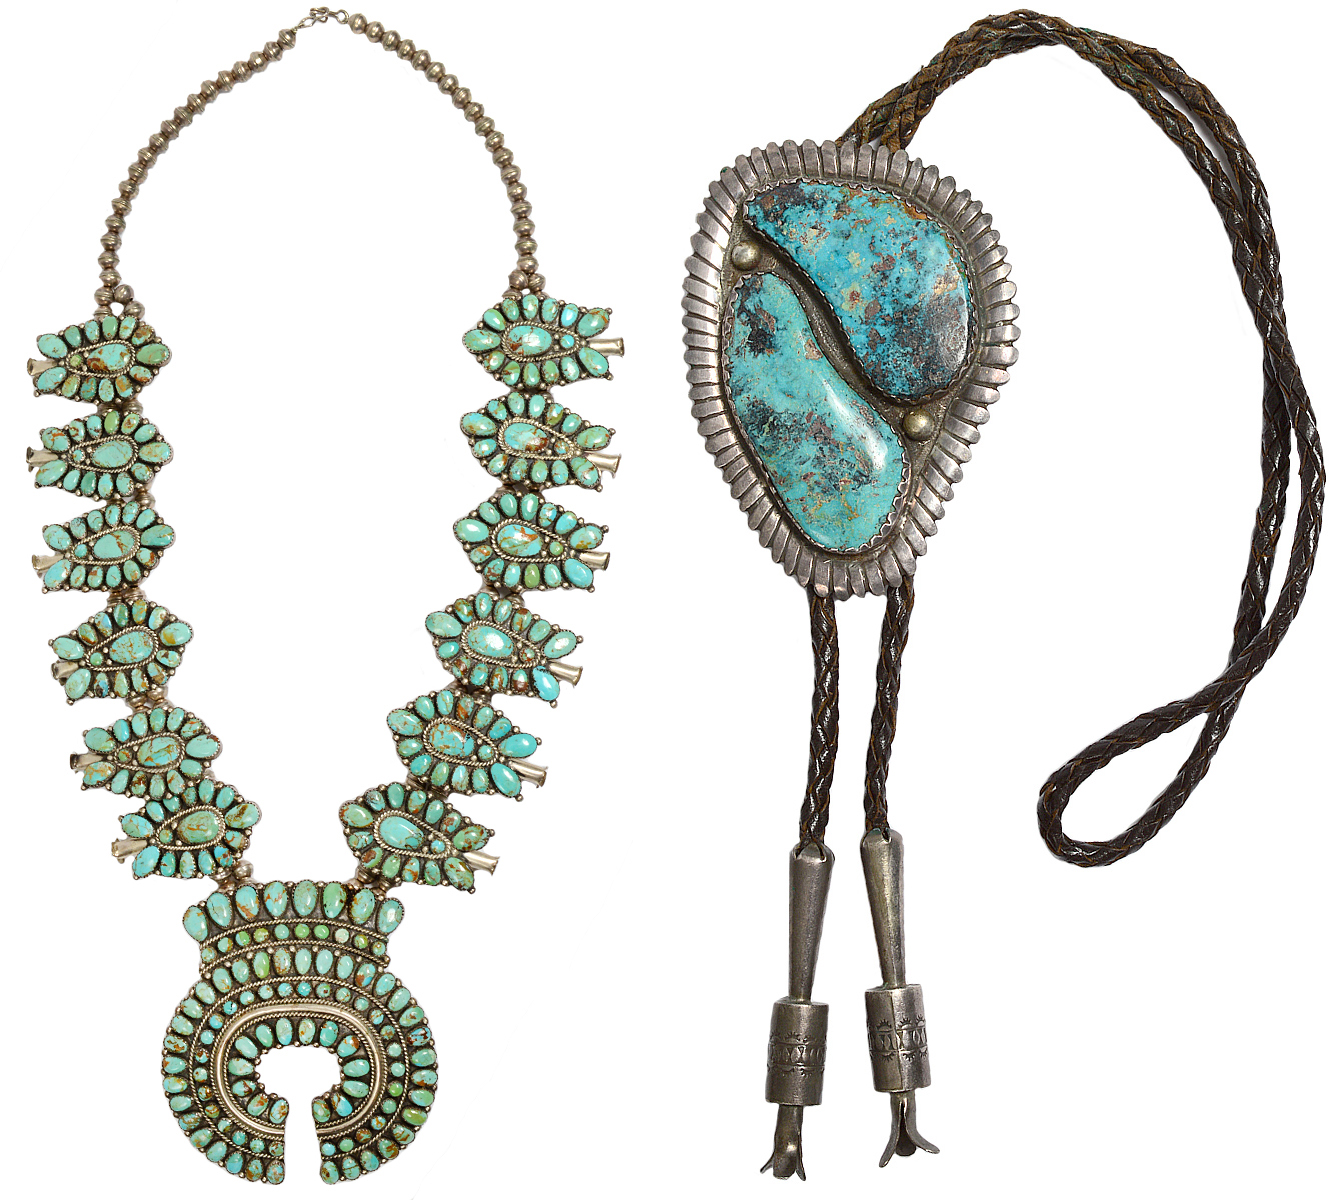 Navajo sterling silver and turquoise squash blossom necklace, signed 'LMB' for Lura Moses Begay. Estate of Edward Stuart Cohen. Native-American sterling silver old pawn bolo tie, initialed 'SFL' probably for Sedalio Fidel Lovato. Estate of Edward Stuart Cohen. AGOPB image